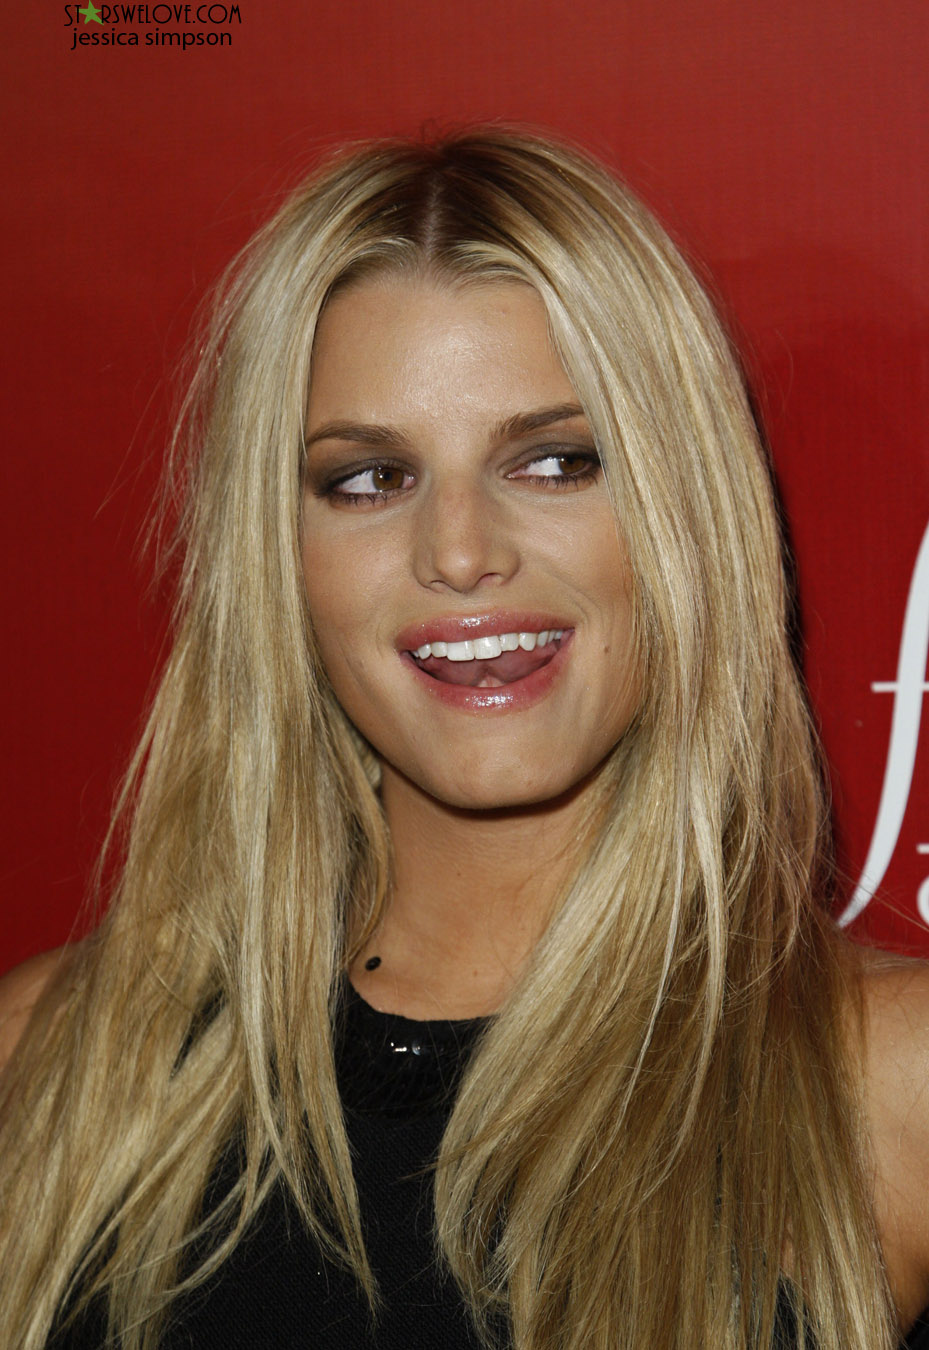 Jessica Simpson photo (jessica_simpson042, 929 x 1350 pixels, 269 kB)